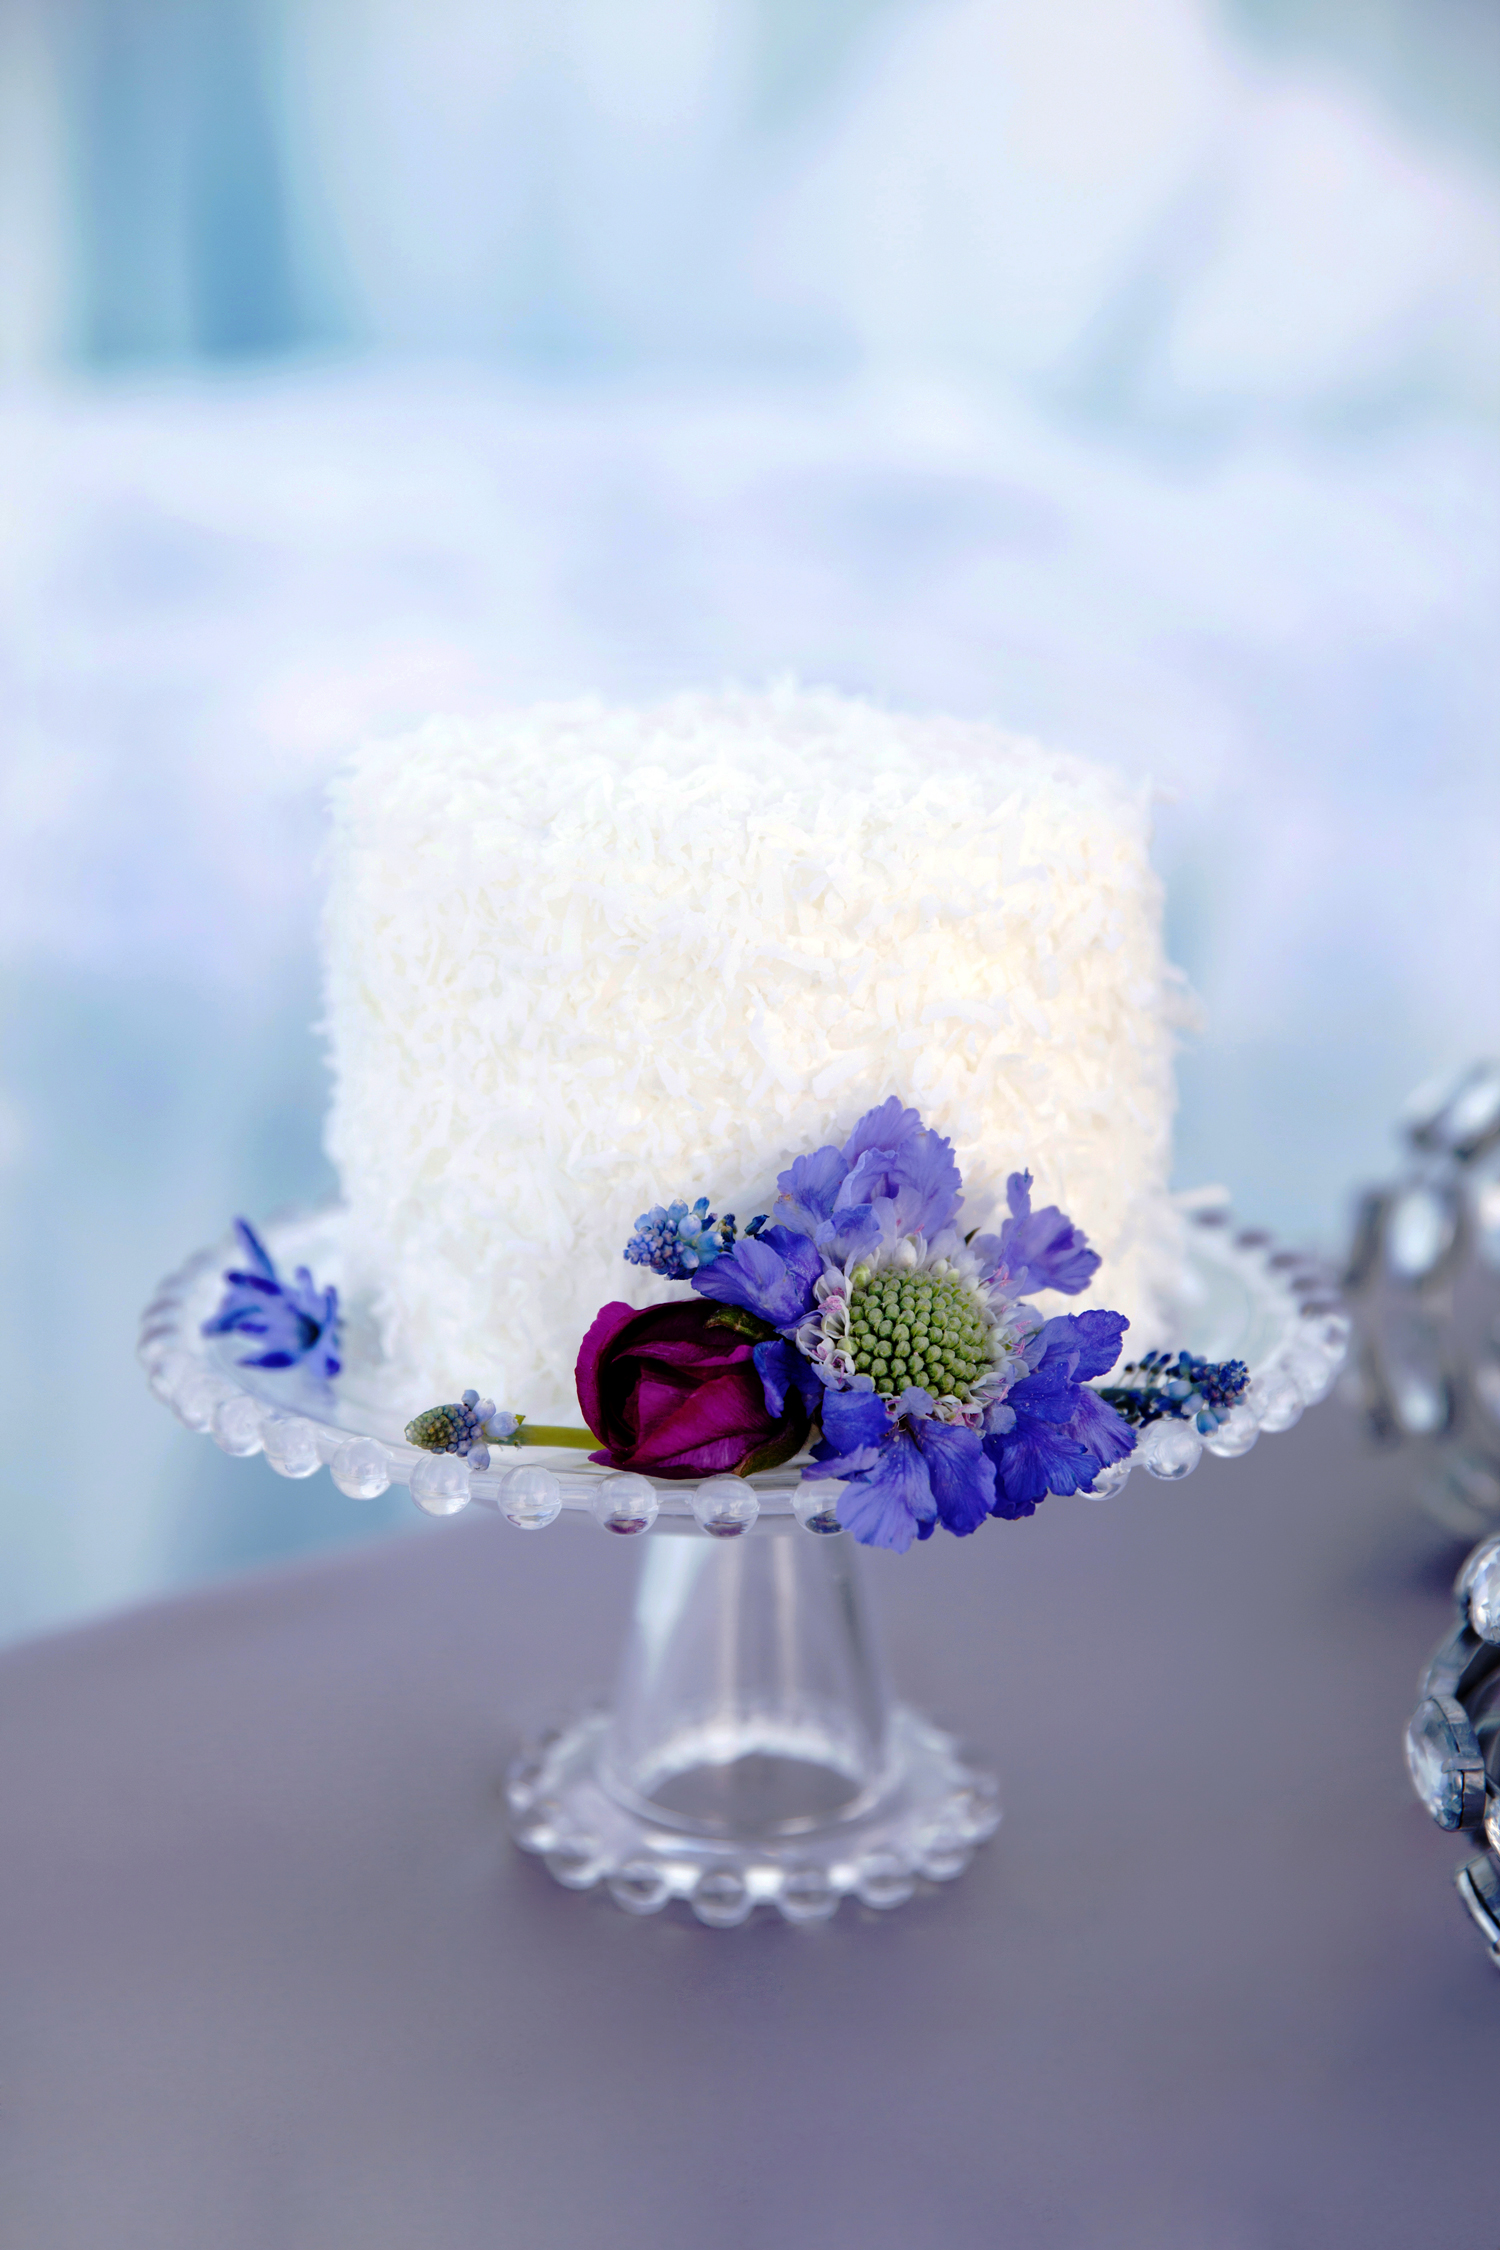 Frozen inspired white wedding cakes